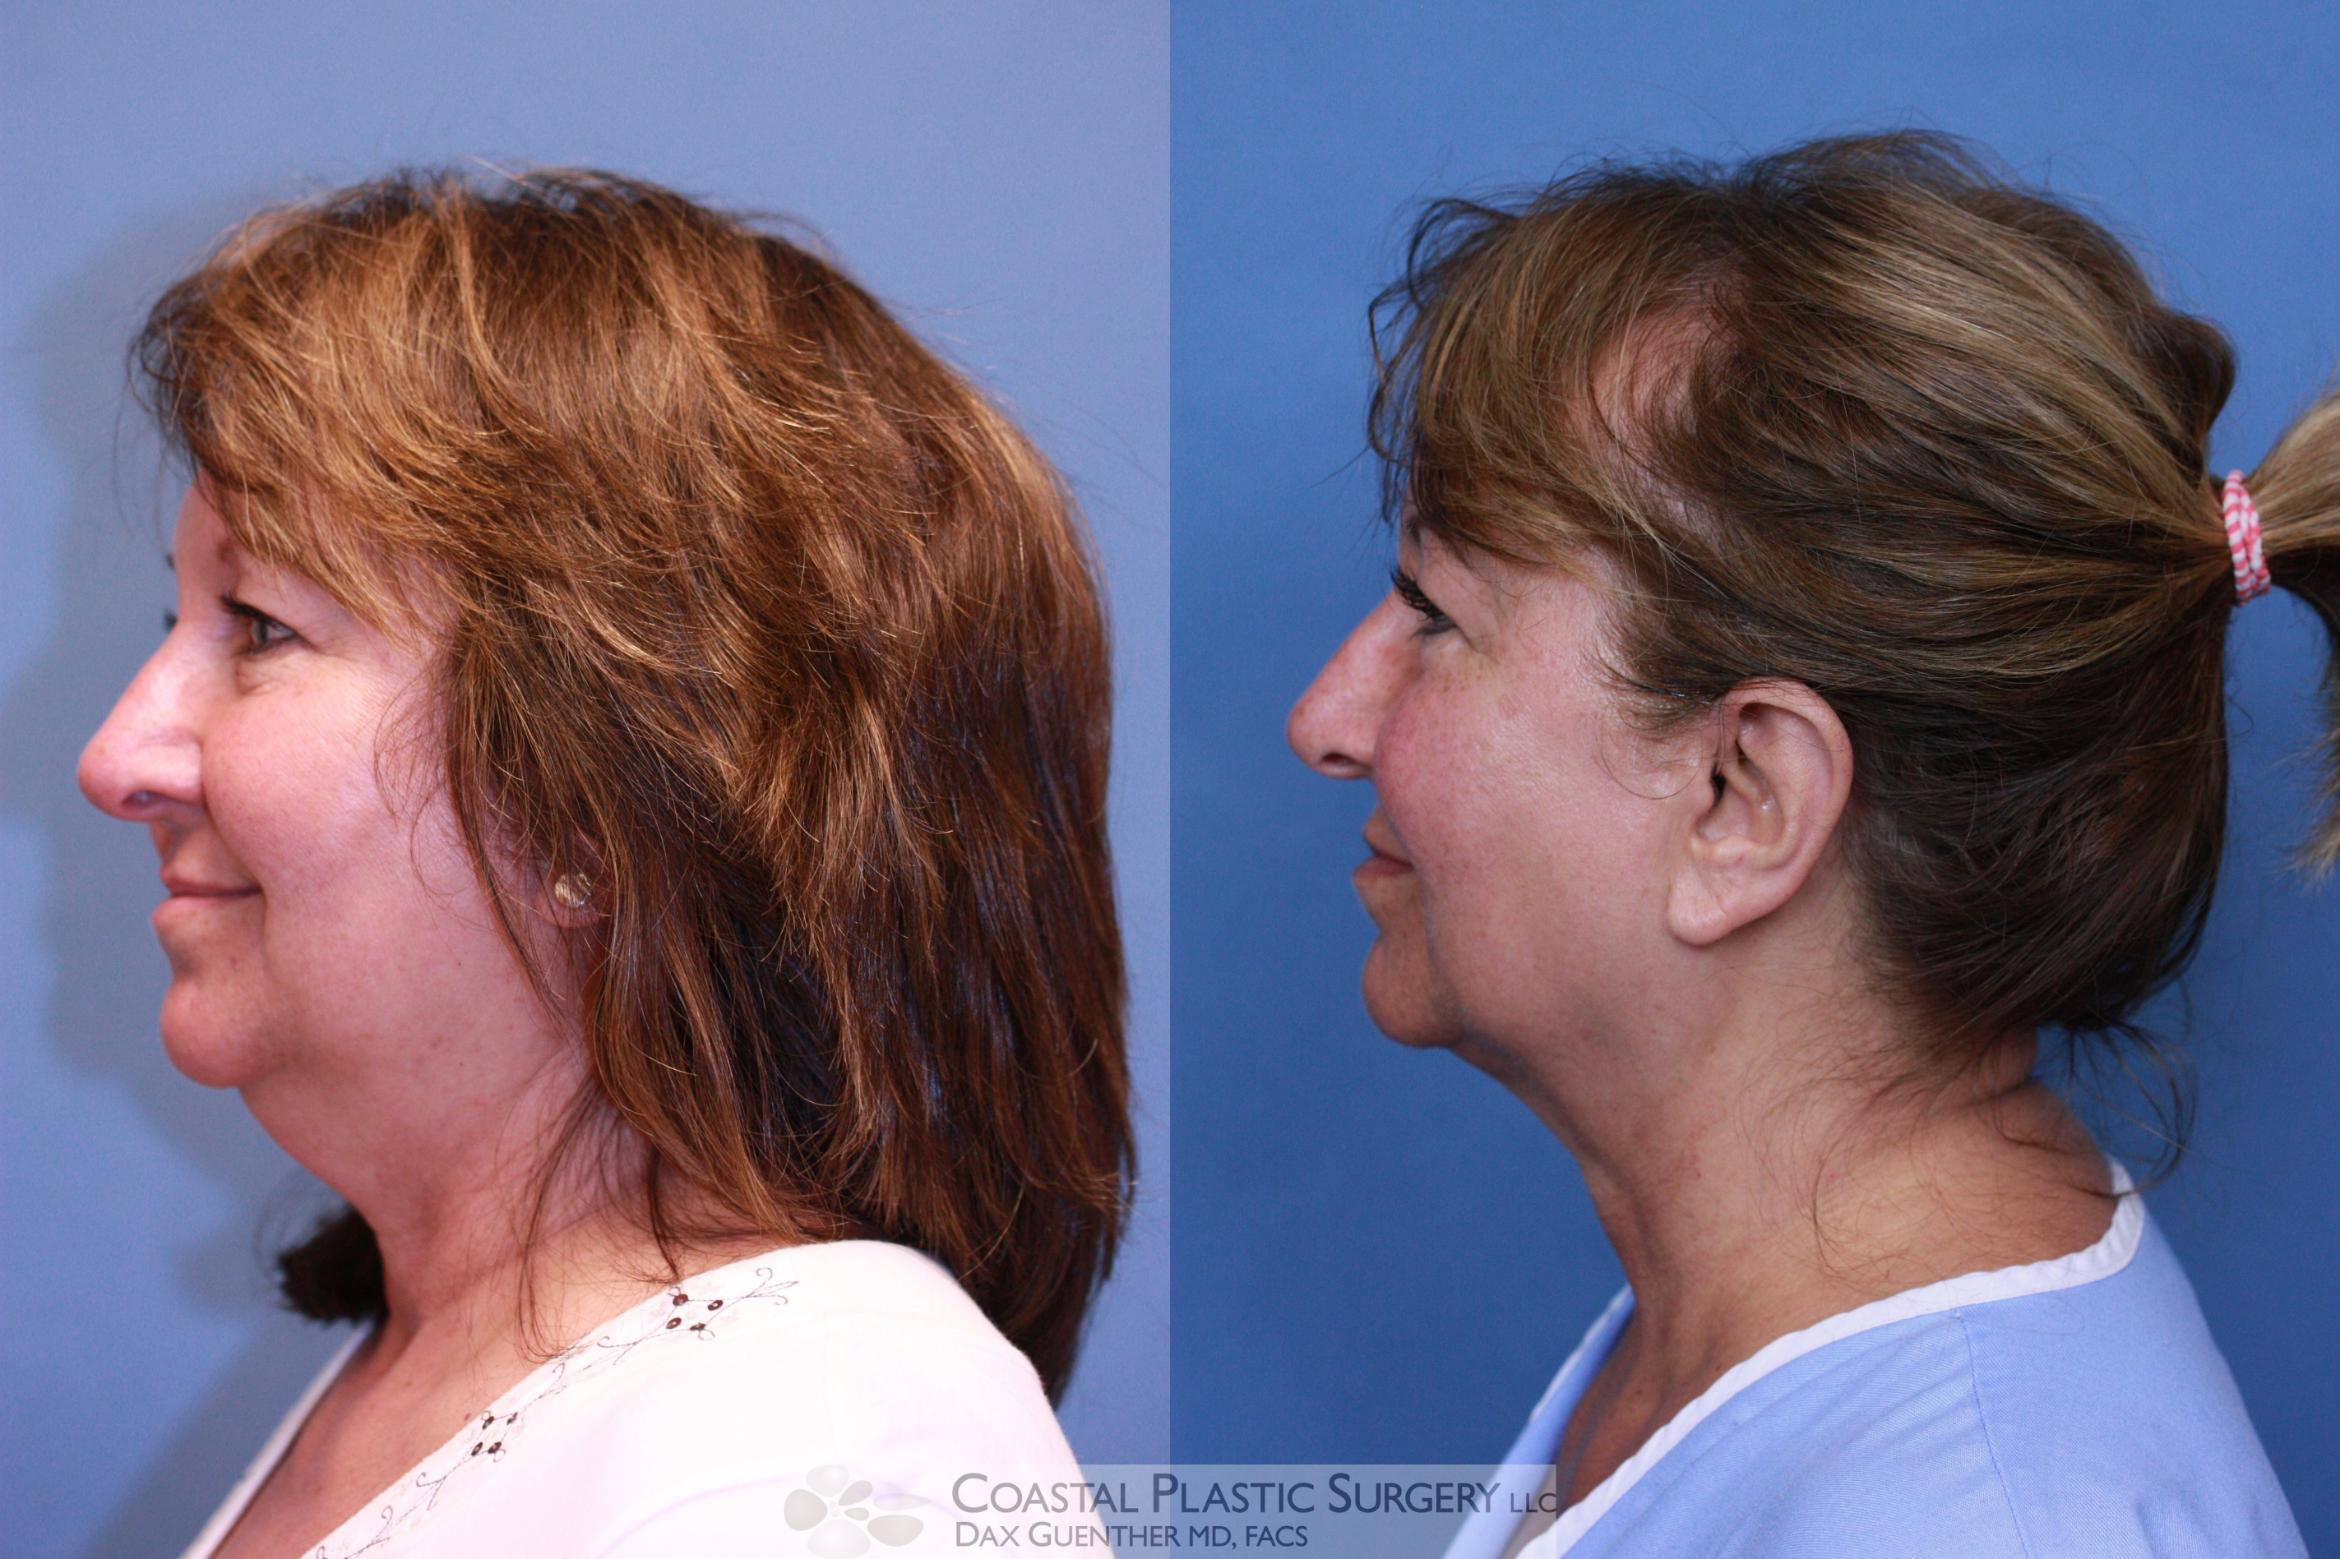 CoolSculpting Before & After Photo | Hingham, MA | Dax Guenther, MD: Coastal Plastic Surgery